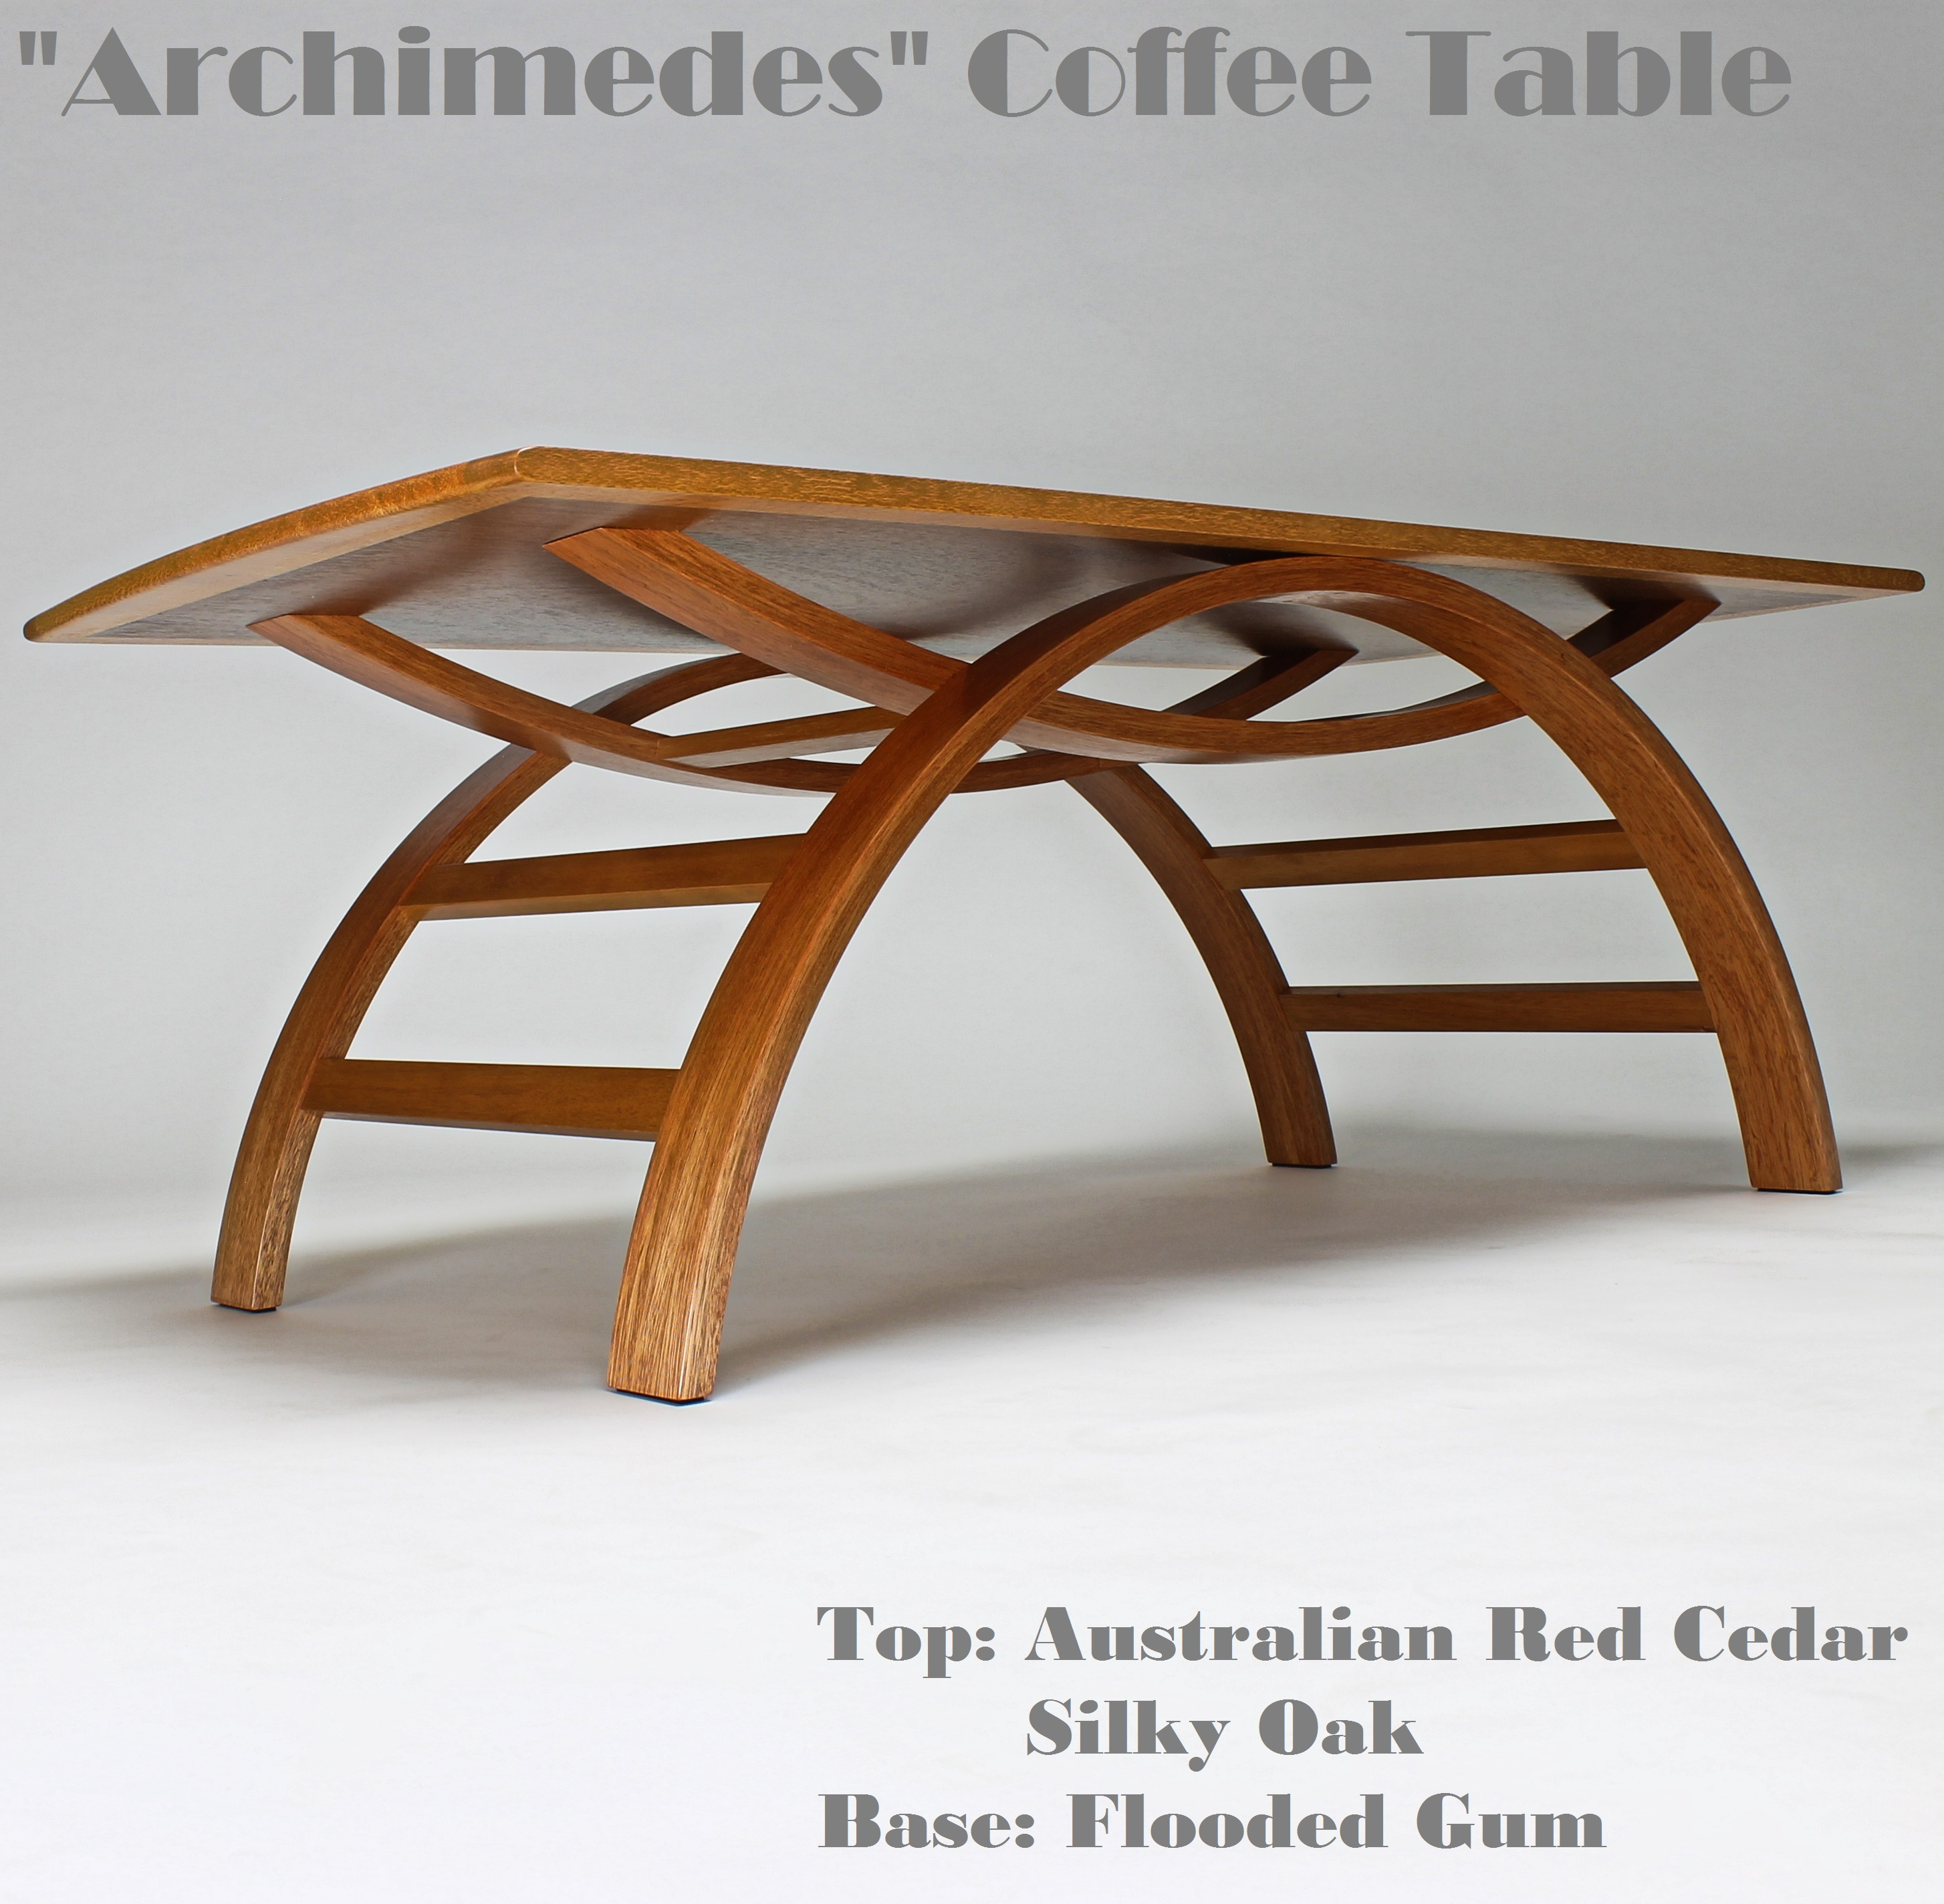 Archimedes Coffee Table 4 Website